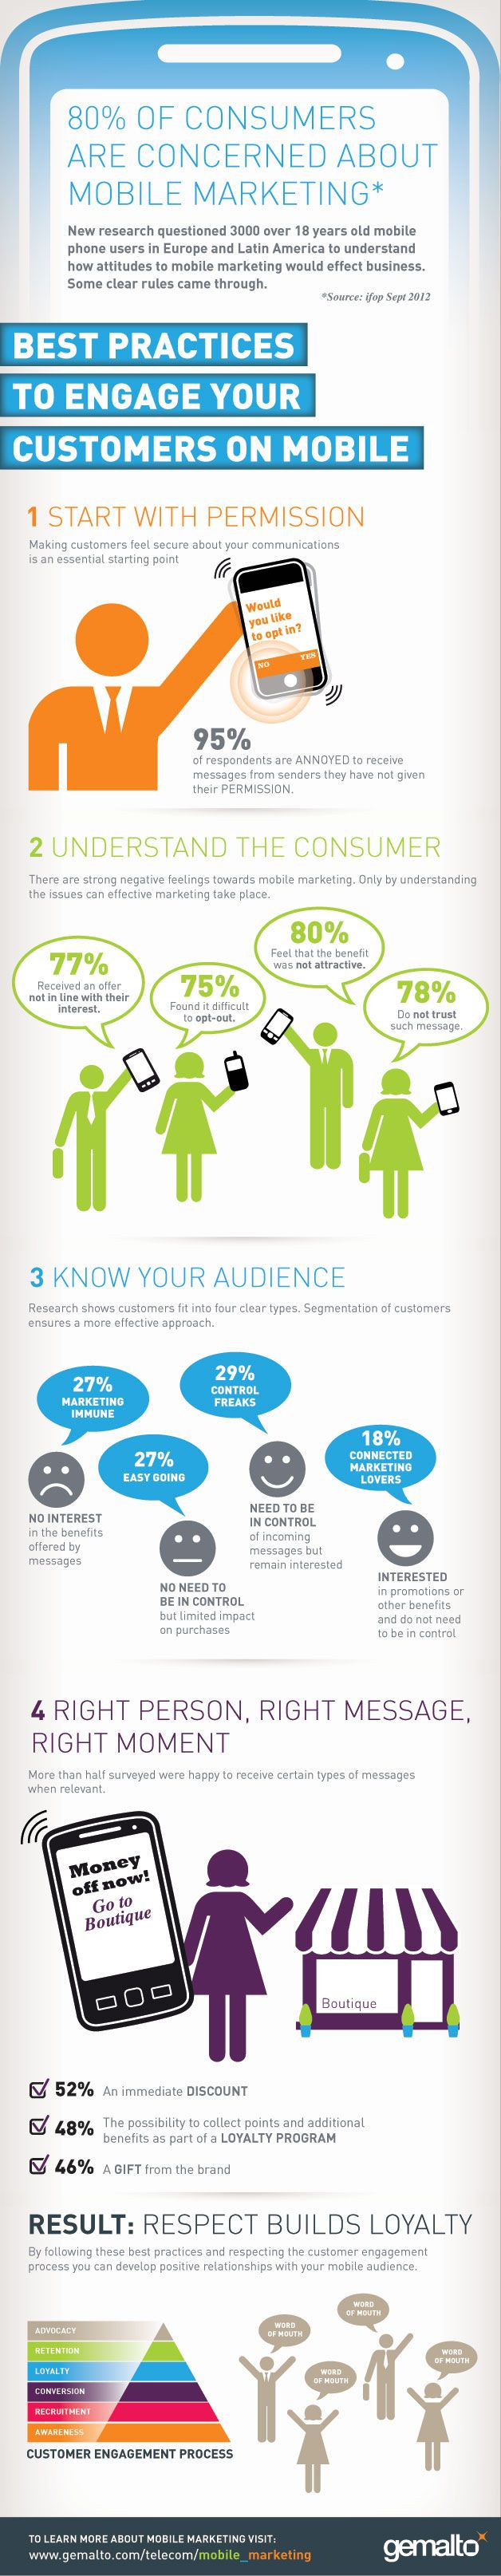 Mobile Marketing - Best Practices to Engage Your Customers on Mobile [Infographic]